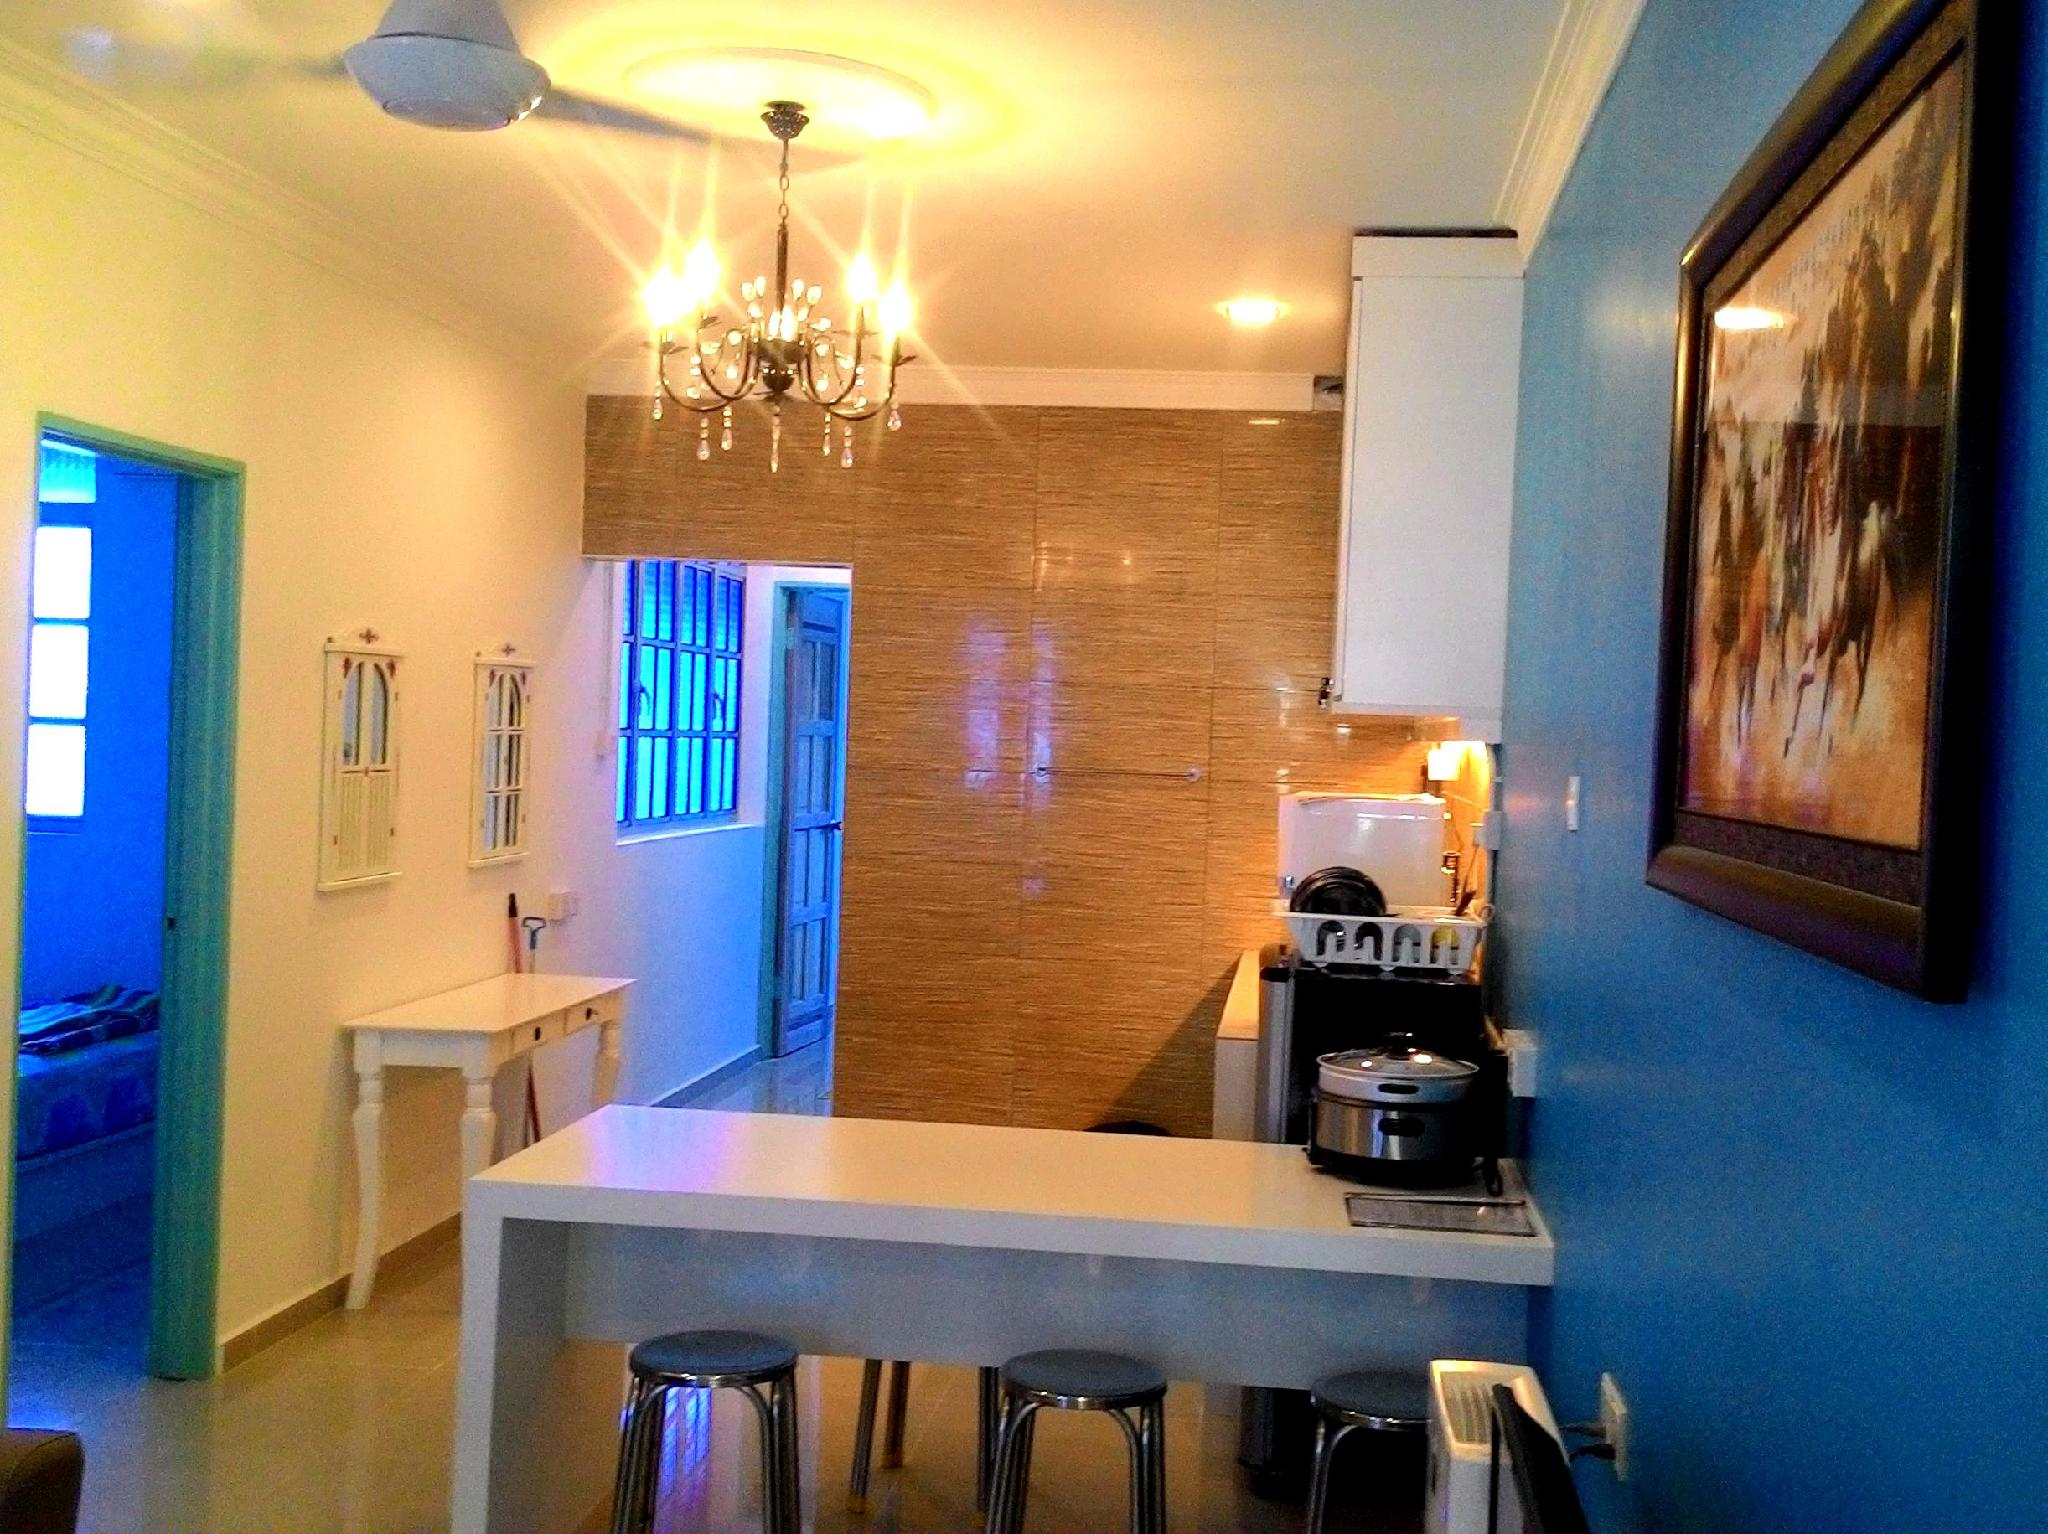 Fastbook Holiday Homestay Book / Directions - NAVITIME Transit